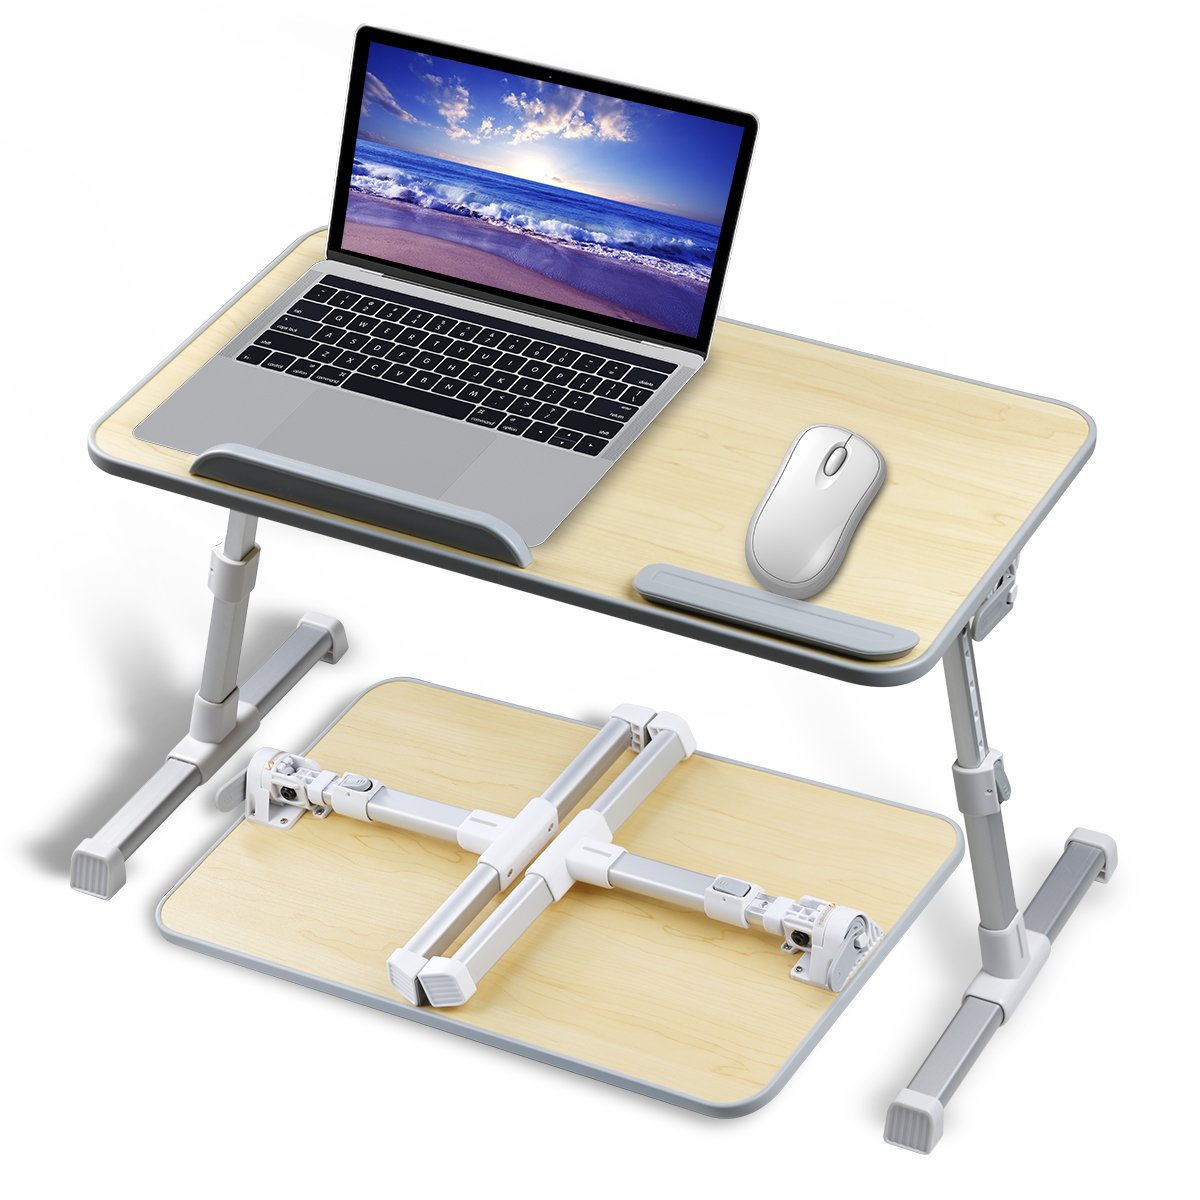 Adjustable Laptop Stand for Desk Bed Couch,Fit for 13-15inch Laptop,Foldable and Portable,Comfortable Ideal for Sit/Stand Lying Working by Aplomb (Image #1)